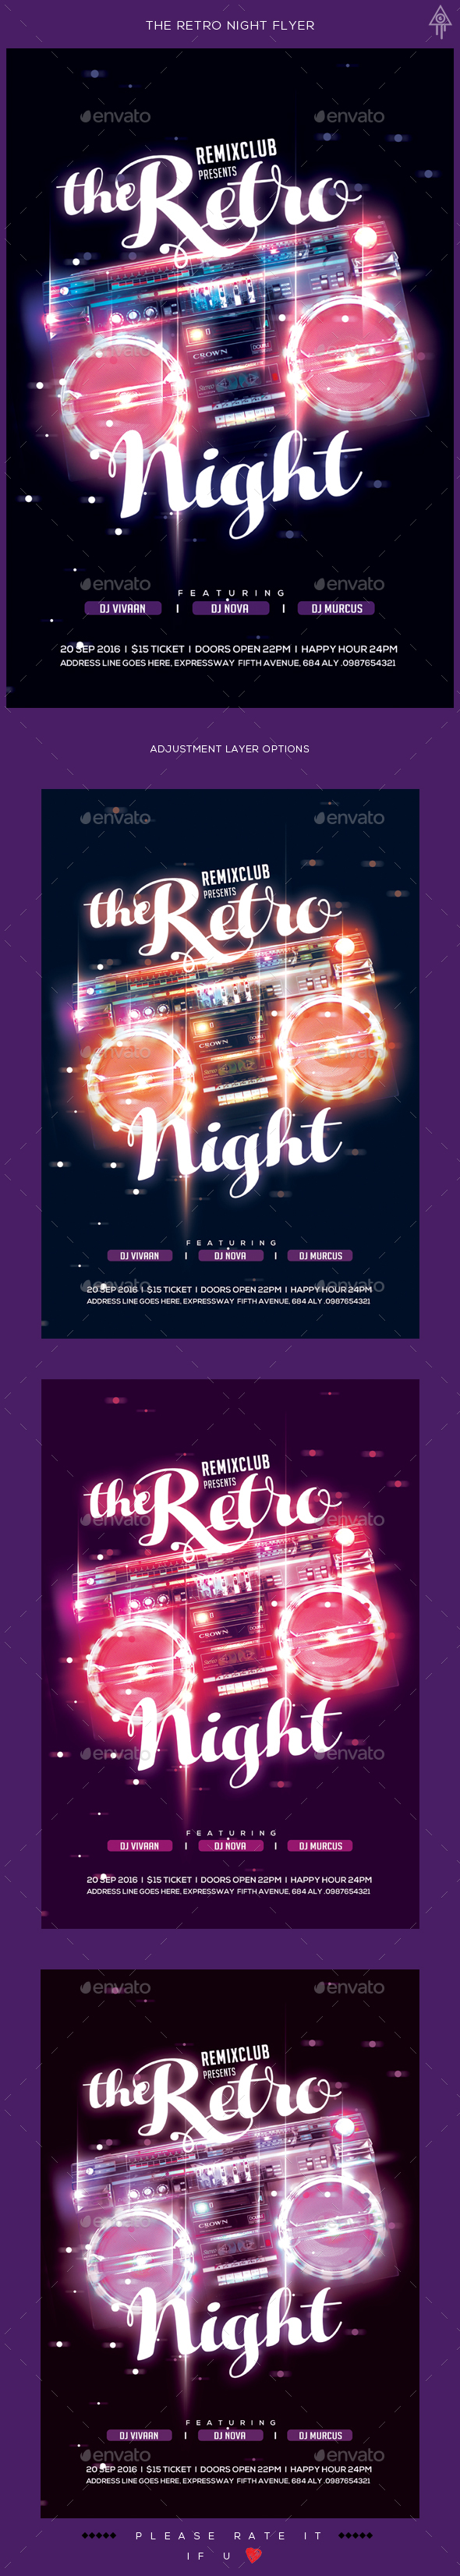 The Retro Night Flyer